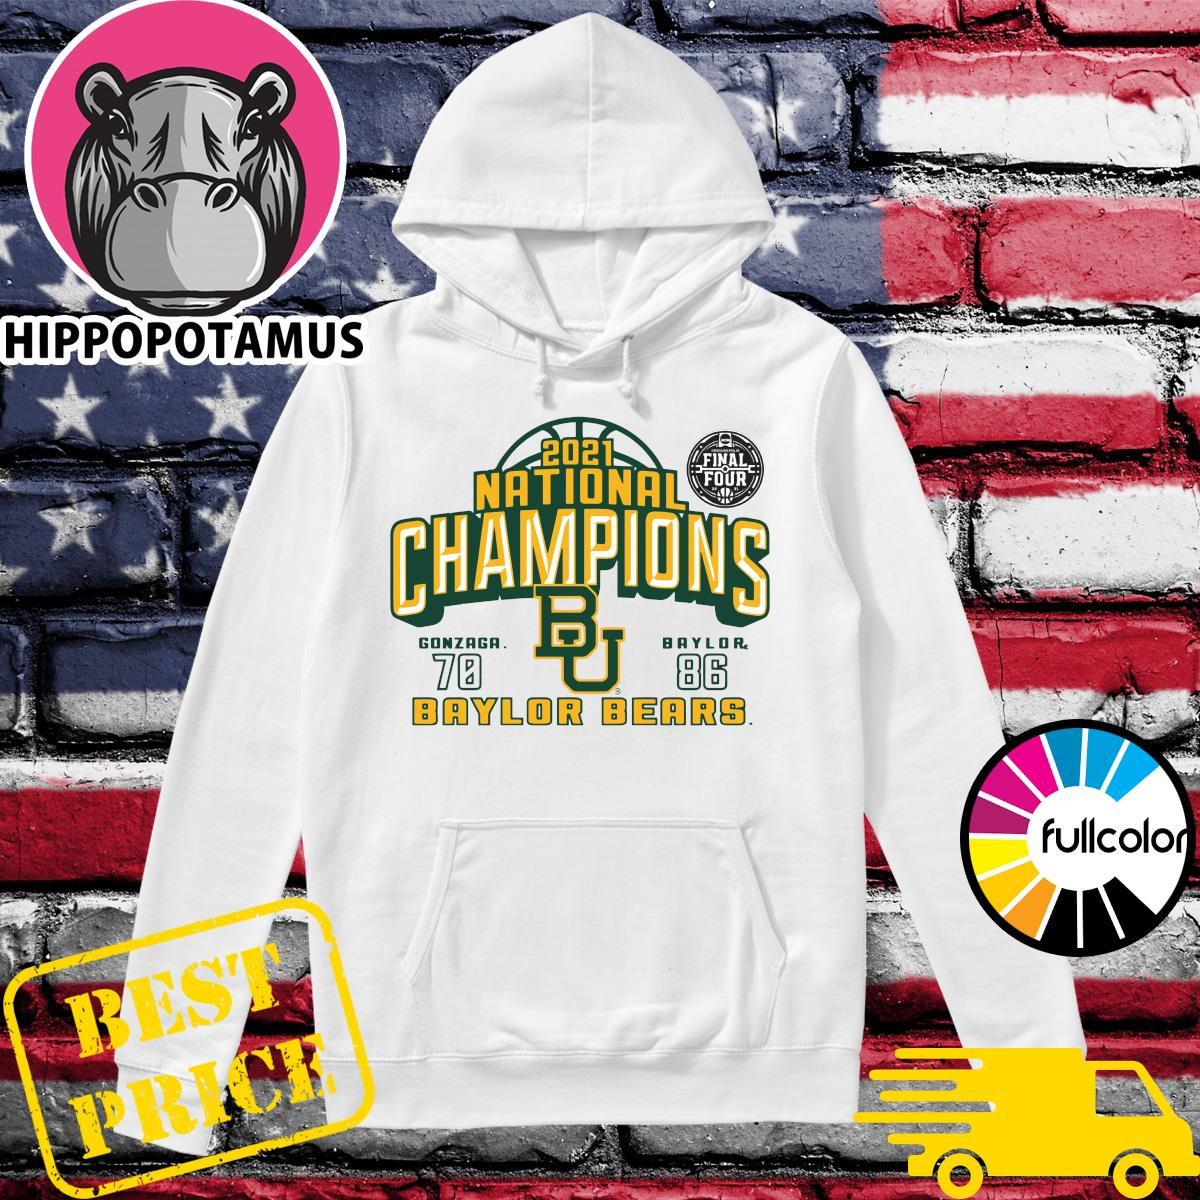 Baylor Bears 2021 NCAA Men's Basketball National Champions With Gonzaga 70 Vs Baylor 86 T-s Hoodie